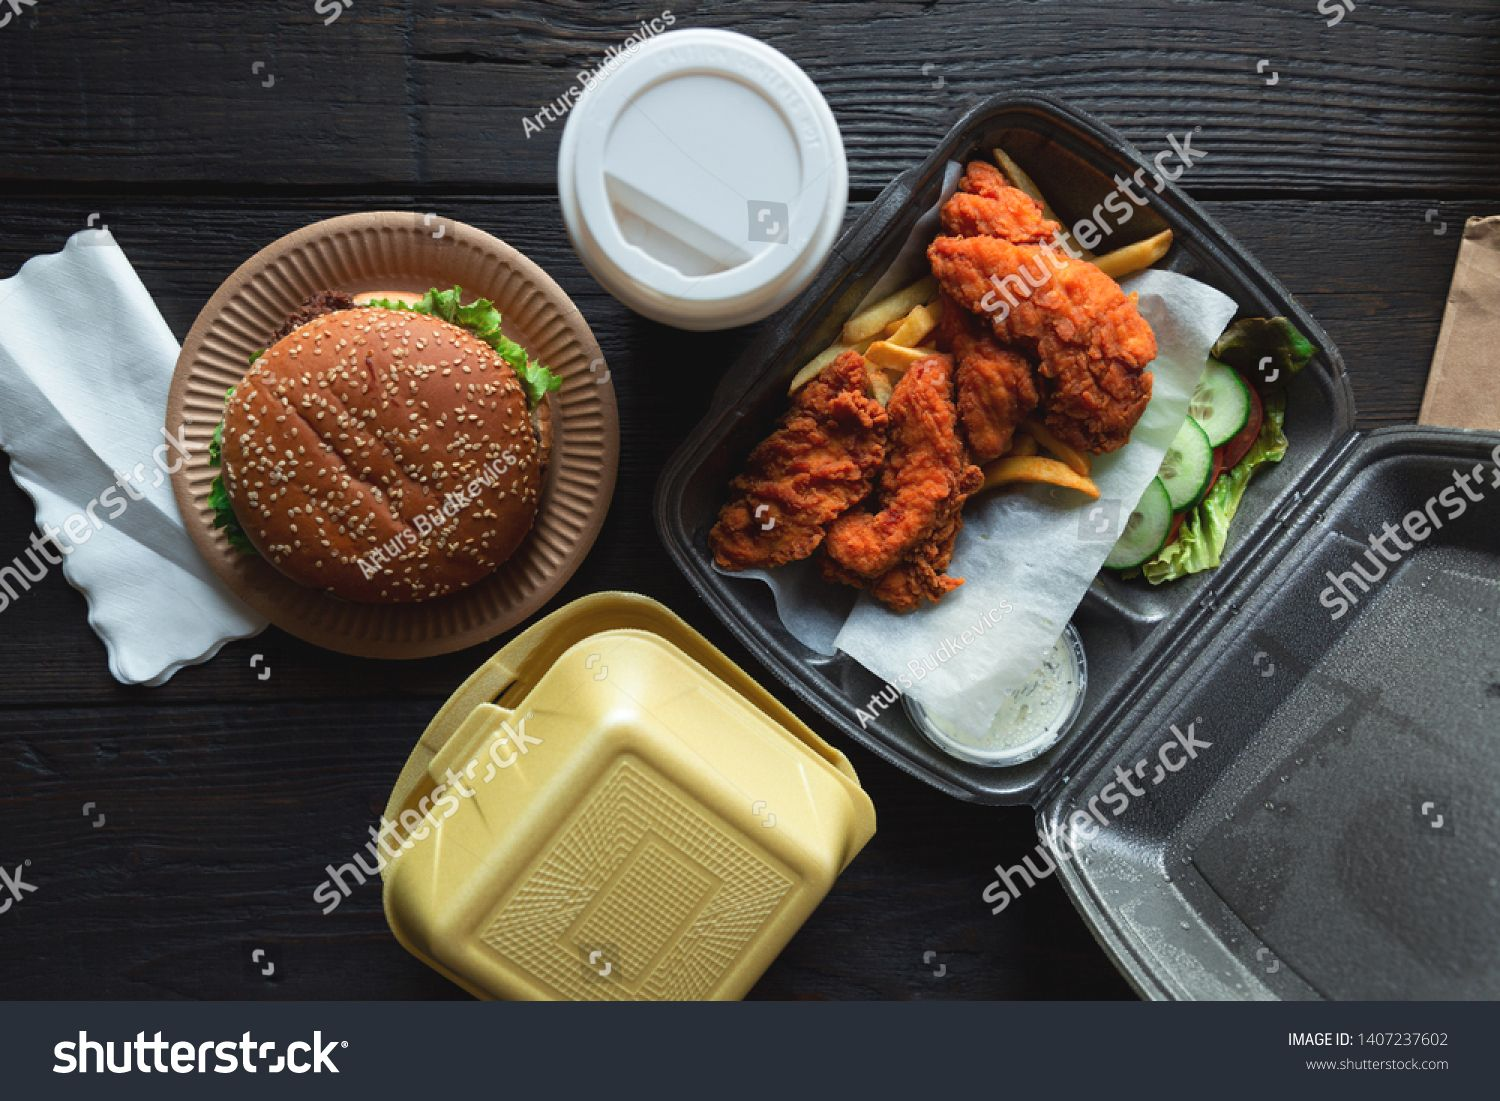 Hamburger, french fries and fried chicken in takeaway